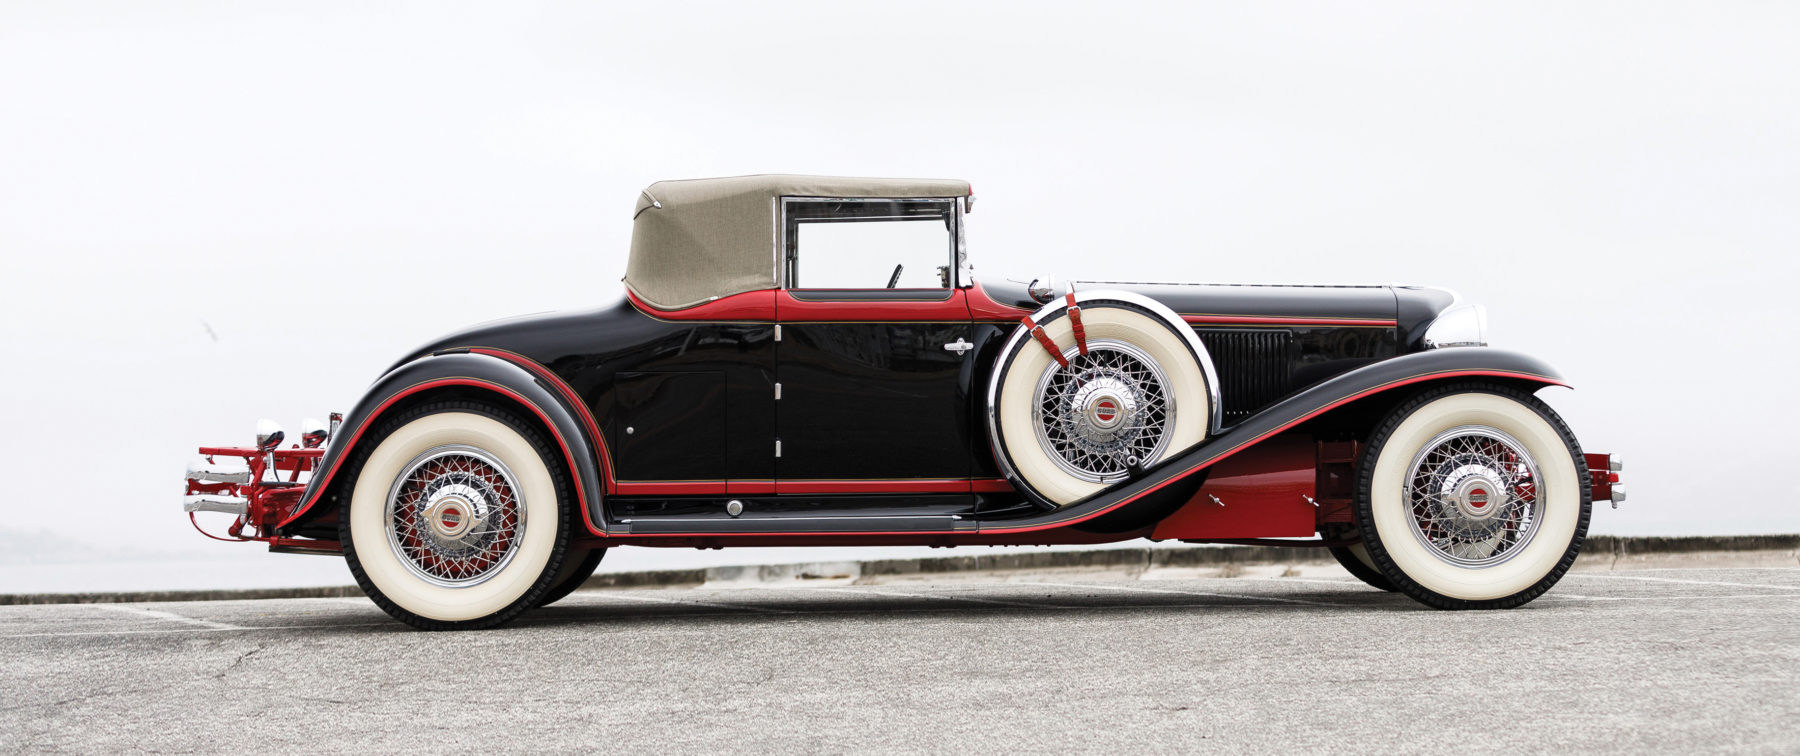 Are These The Most Beautiful Cars Of The 1930s Gentleman S Journal